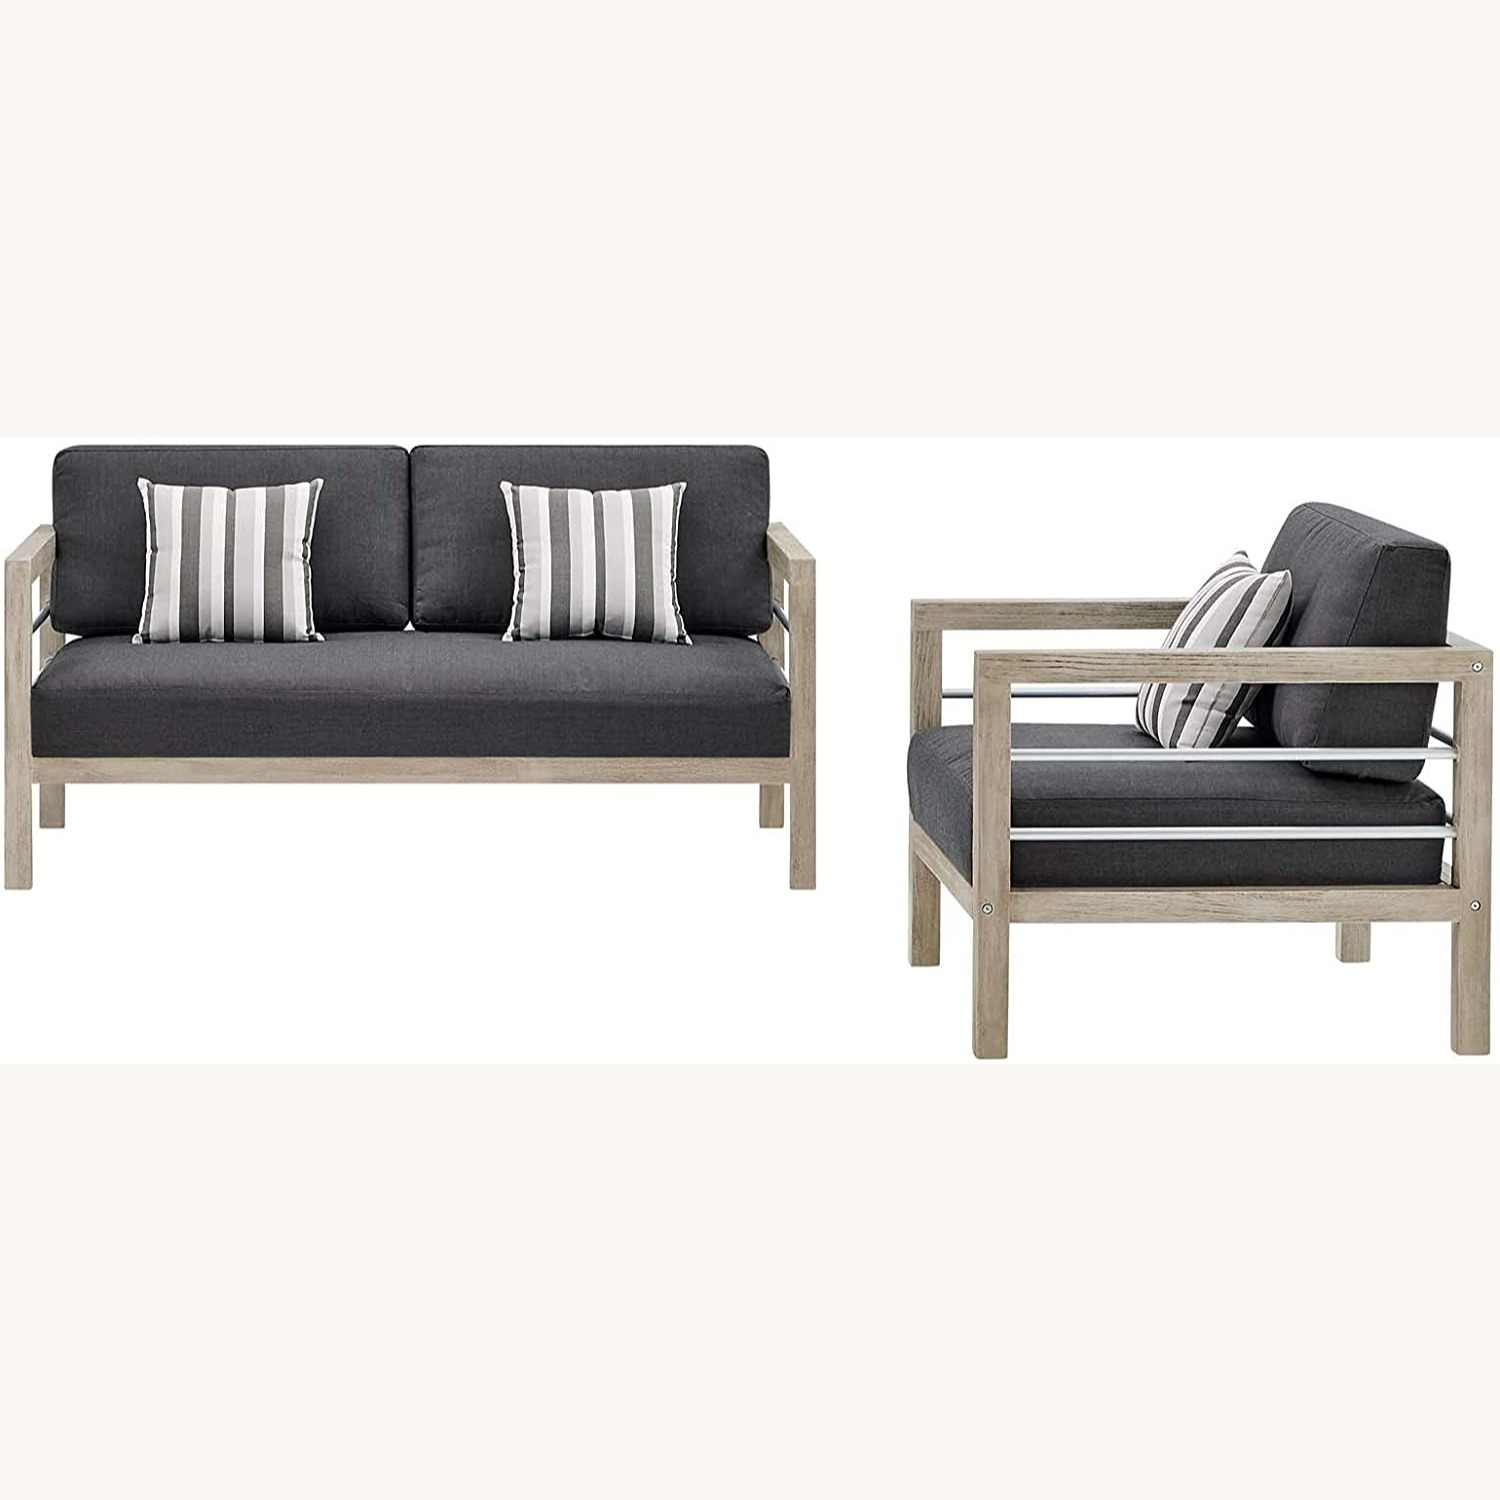 Outdoor Patio Set In Light Gray Wood Finish - image-0